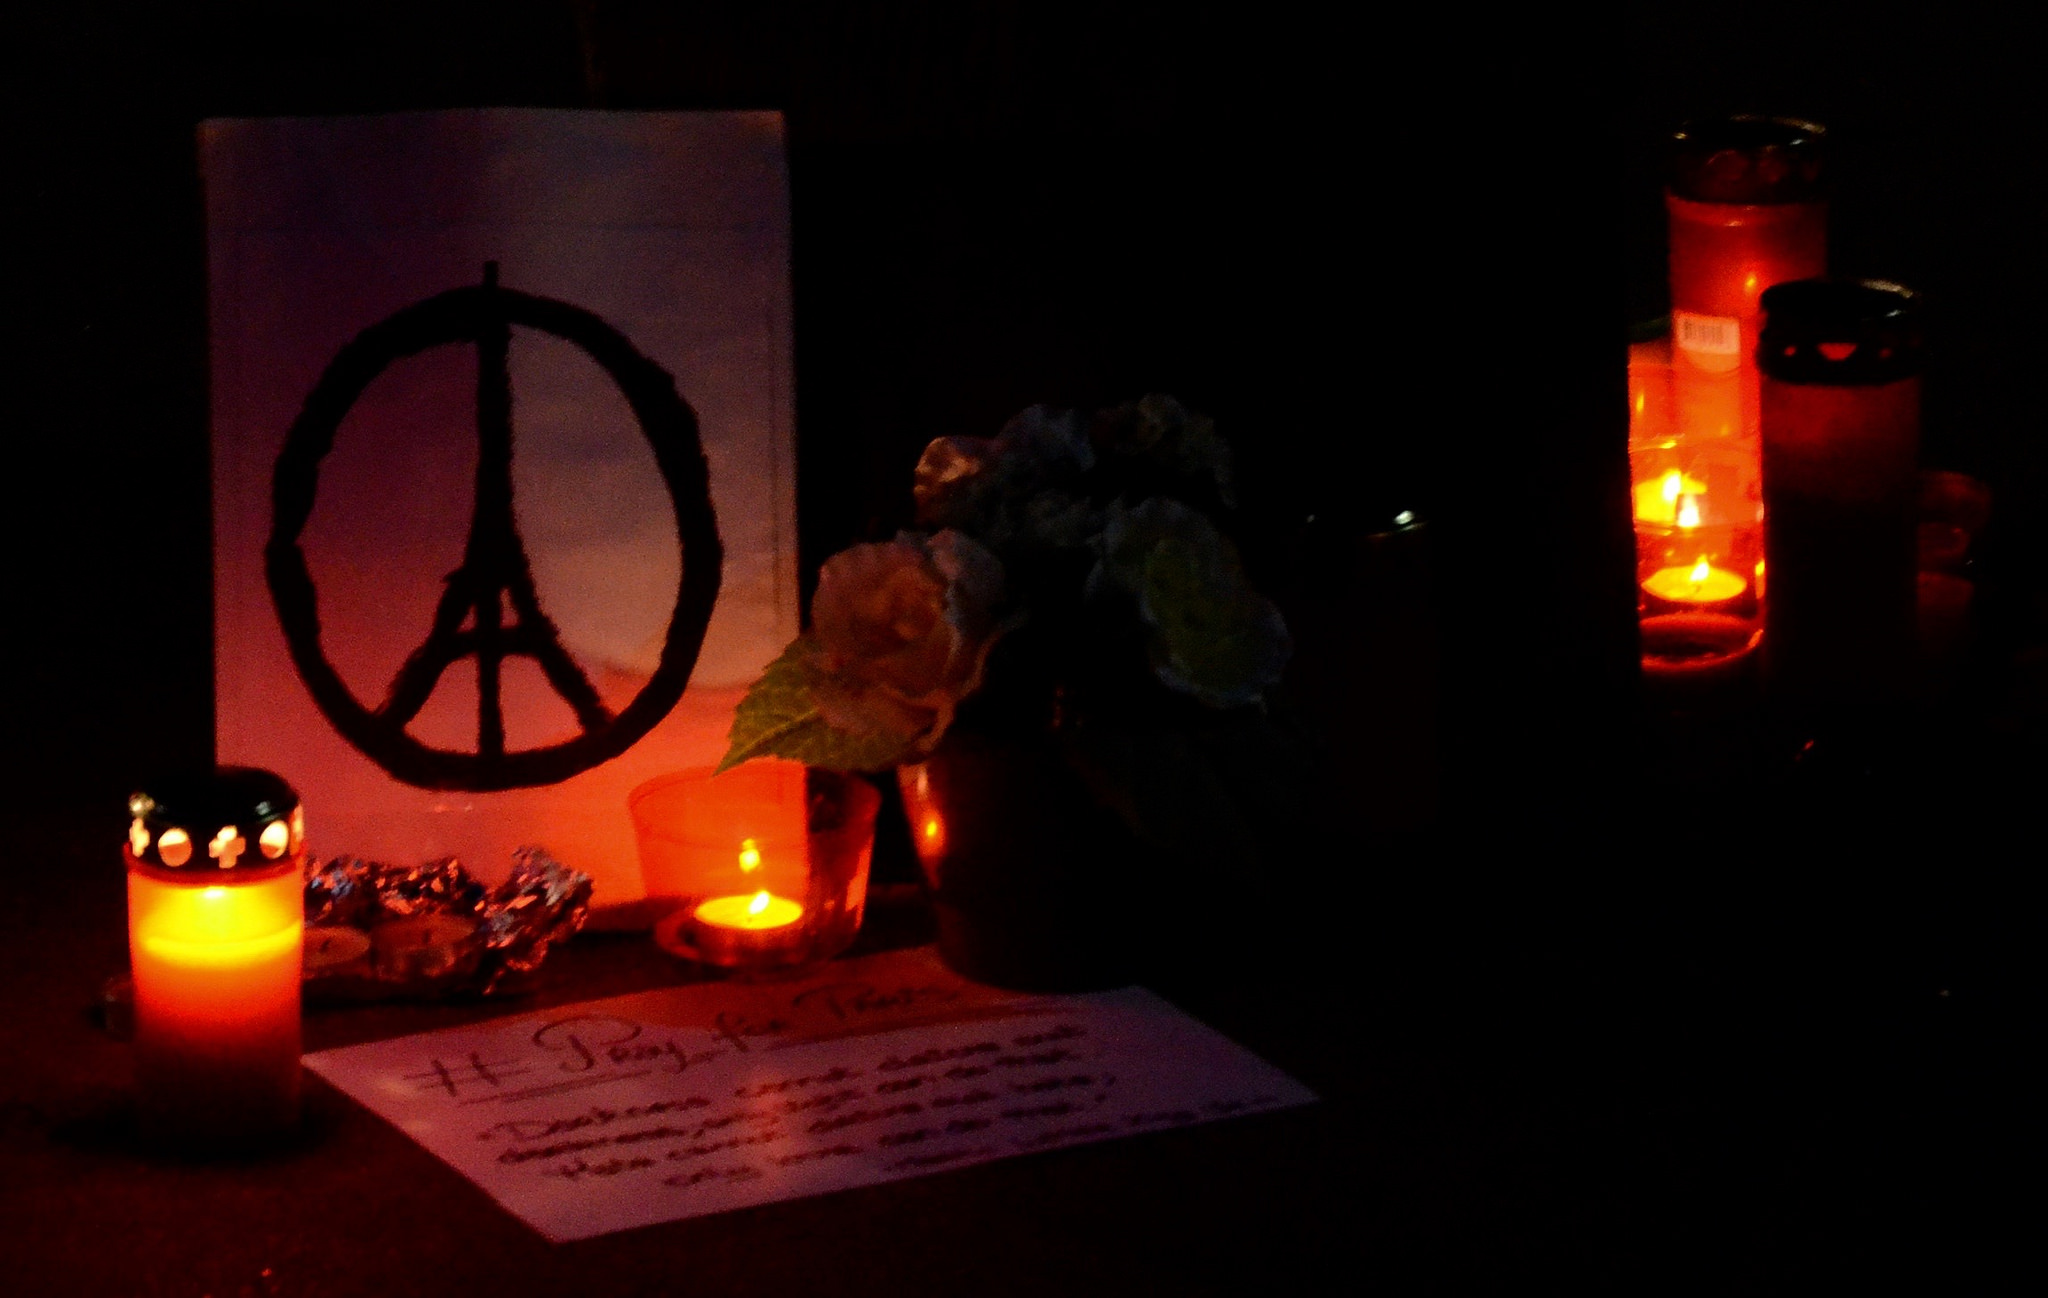 Nov. 13 Paris attacks memorial